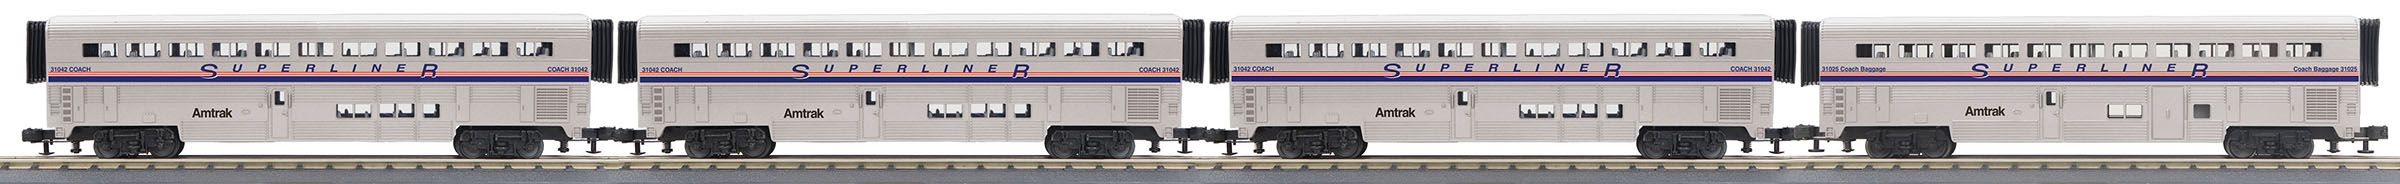 MTH 306538 O-31 SuperLiner Set, Amtrak/Phase IV #31025 MTH306538